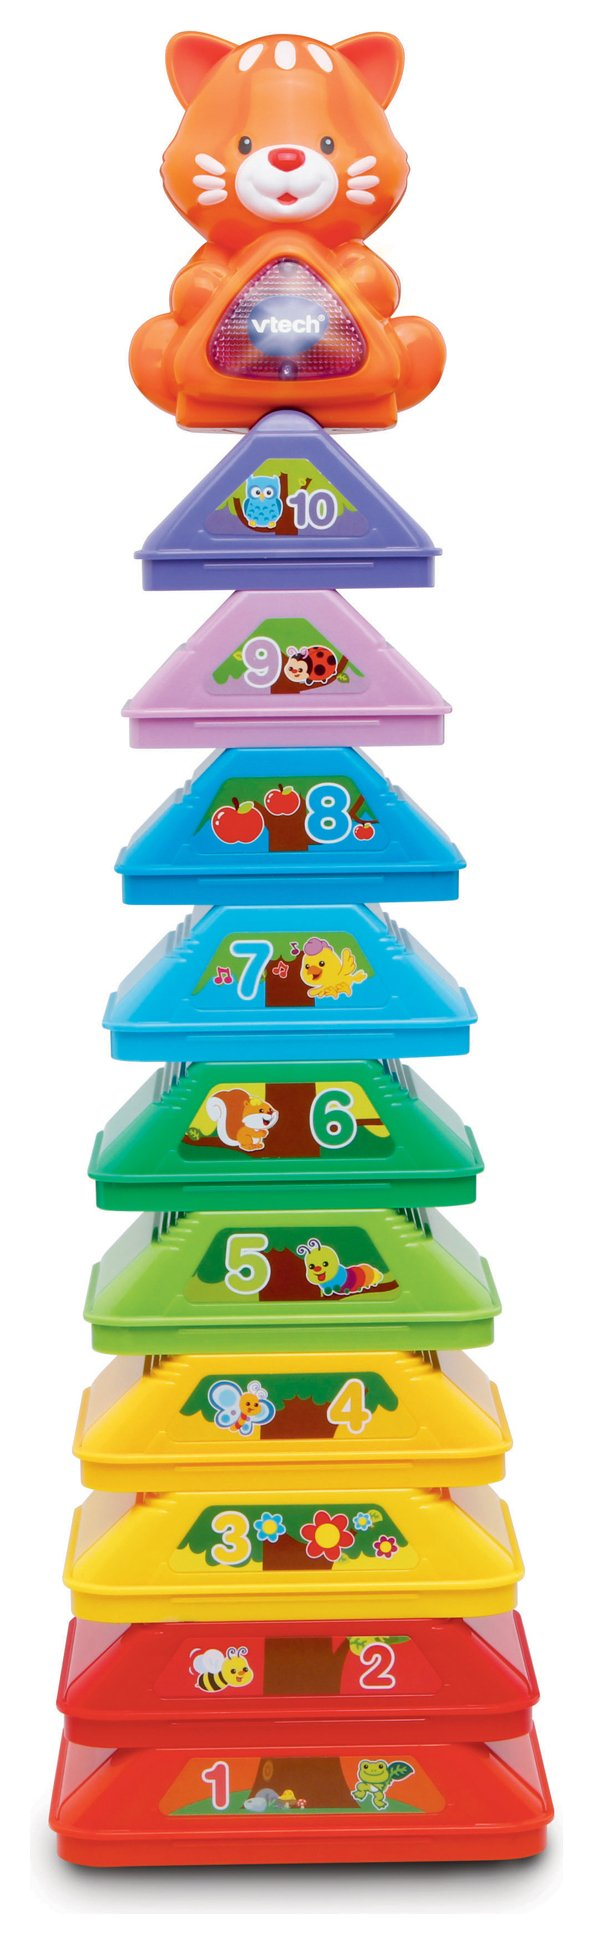 VTech - Stack Sort Store Tree from vtech